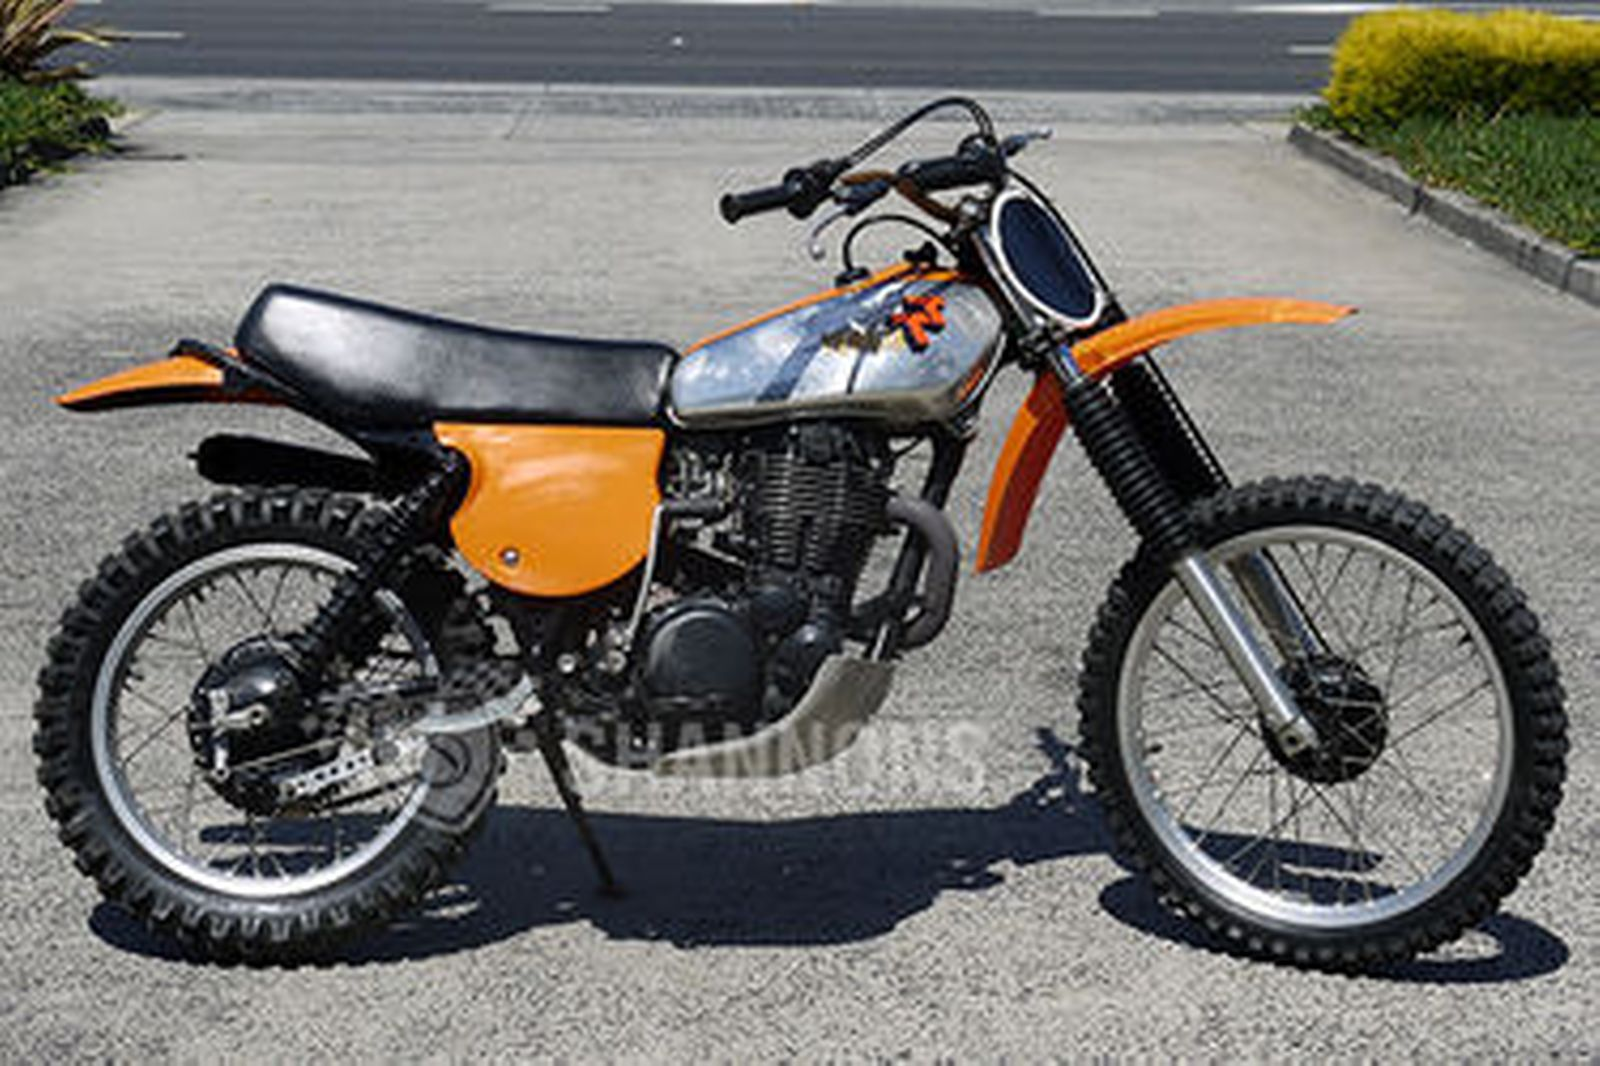 yamaha tt500 trail bike auctions lot 34 shannons. Black Bedroom Furniture Sets. Home Design Ideas